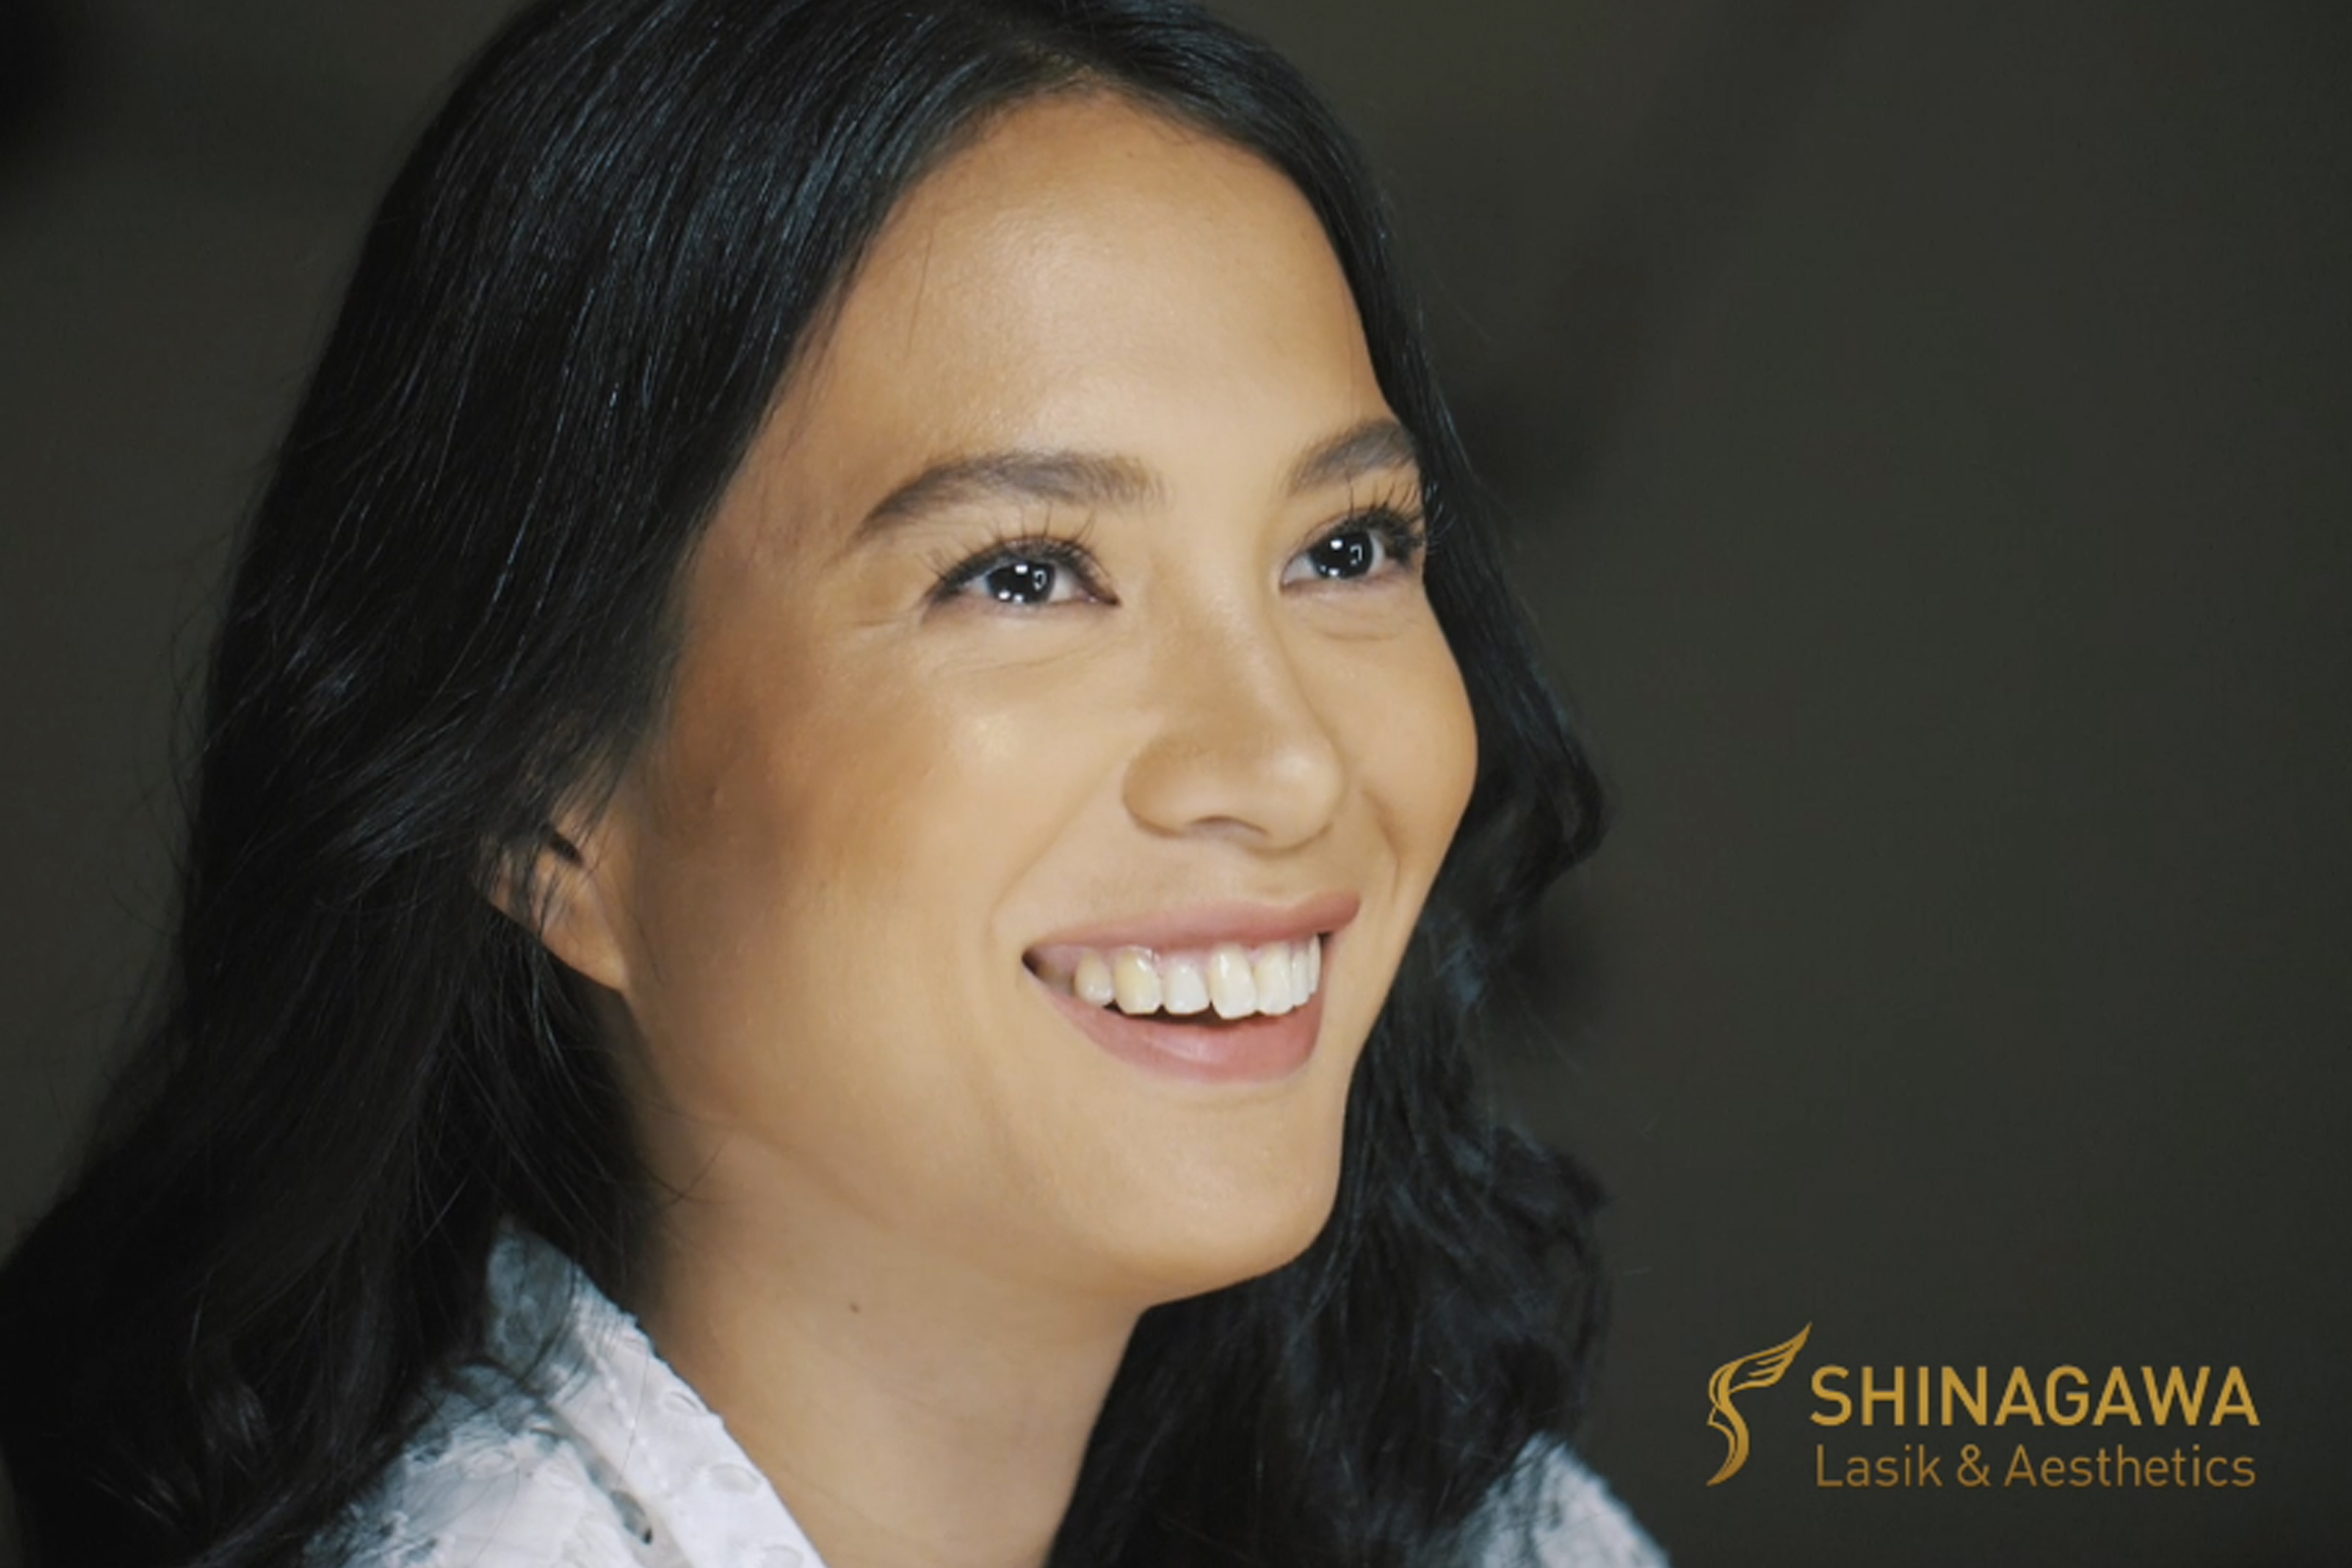 Isabelle Daza, A Better Person After LASIK | Shinagawa Feature Story